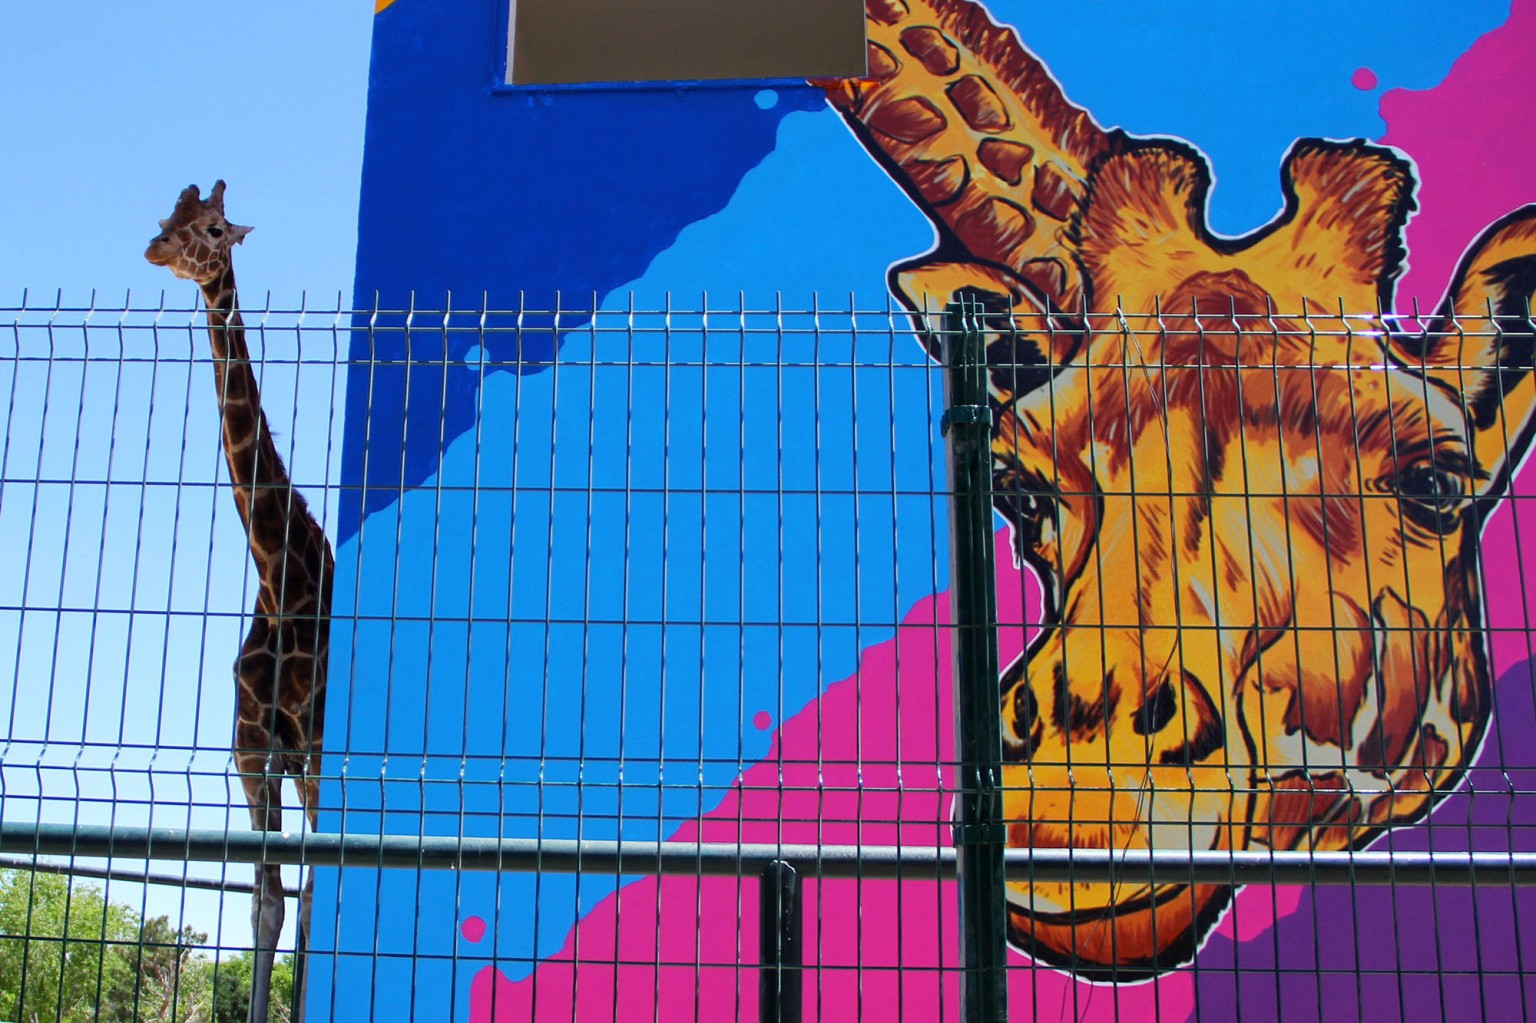 Modesto, a male giraffe considered the mascot of Ciudad Juarez, is pictured on the 18th anniversary of his time at the Central Park in Ciudad Juarez, Mexico, on April 29. HERIKA MARTINEZ/AFP/Getty Images